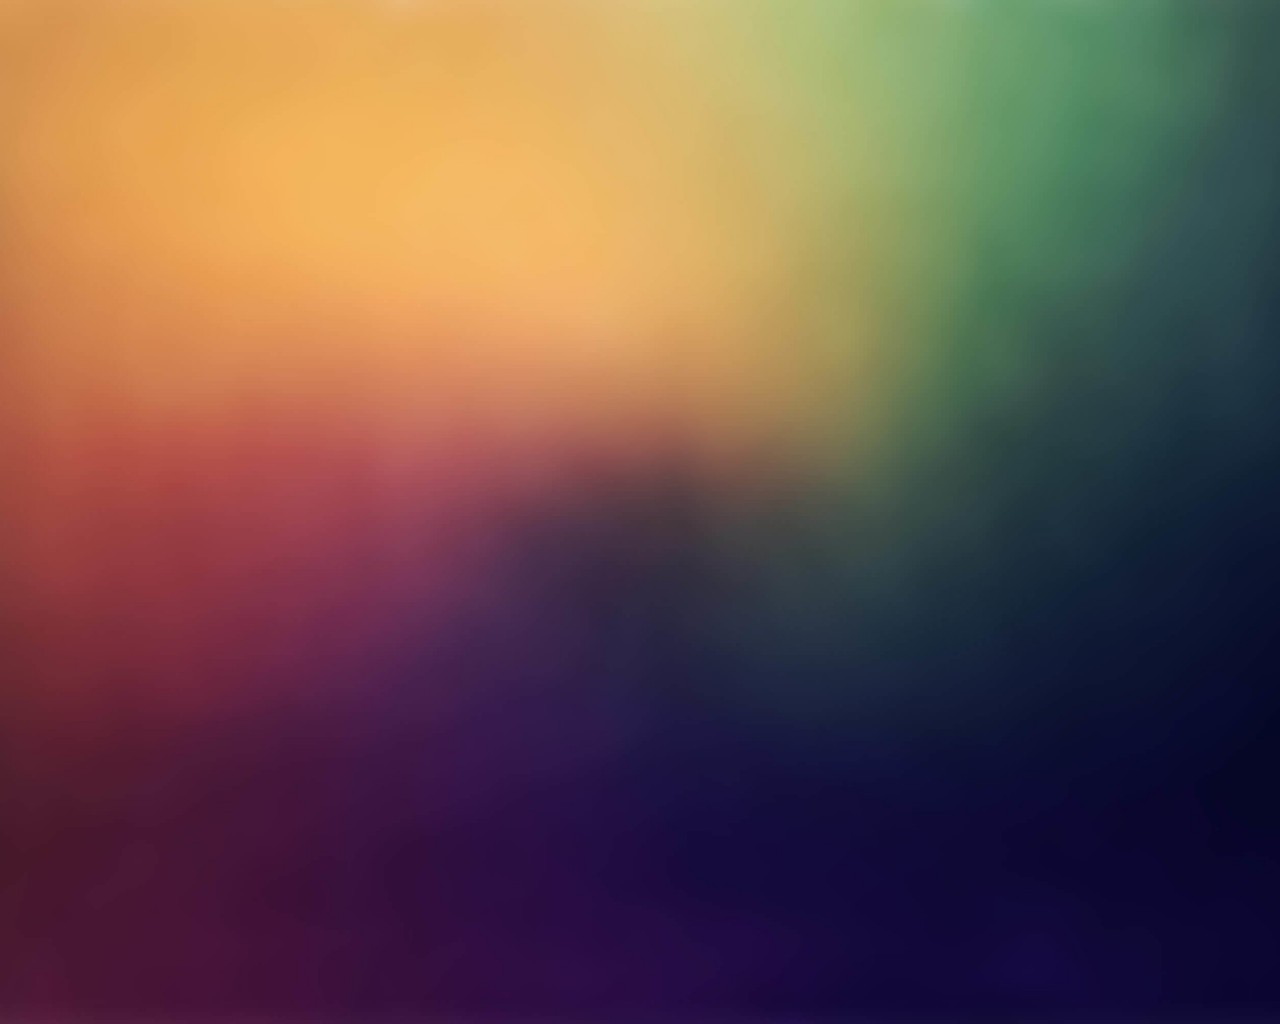 Blurred Rainbow Wallpaper for Desktop 1280x1024